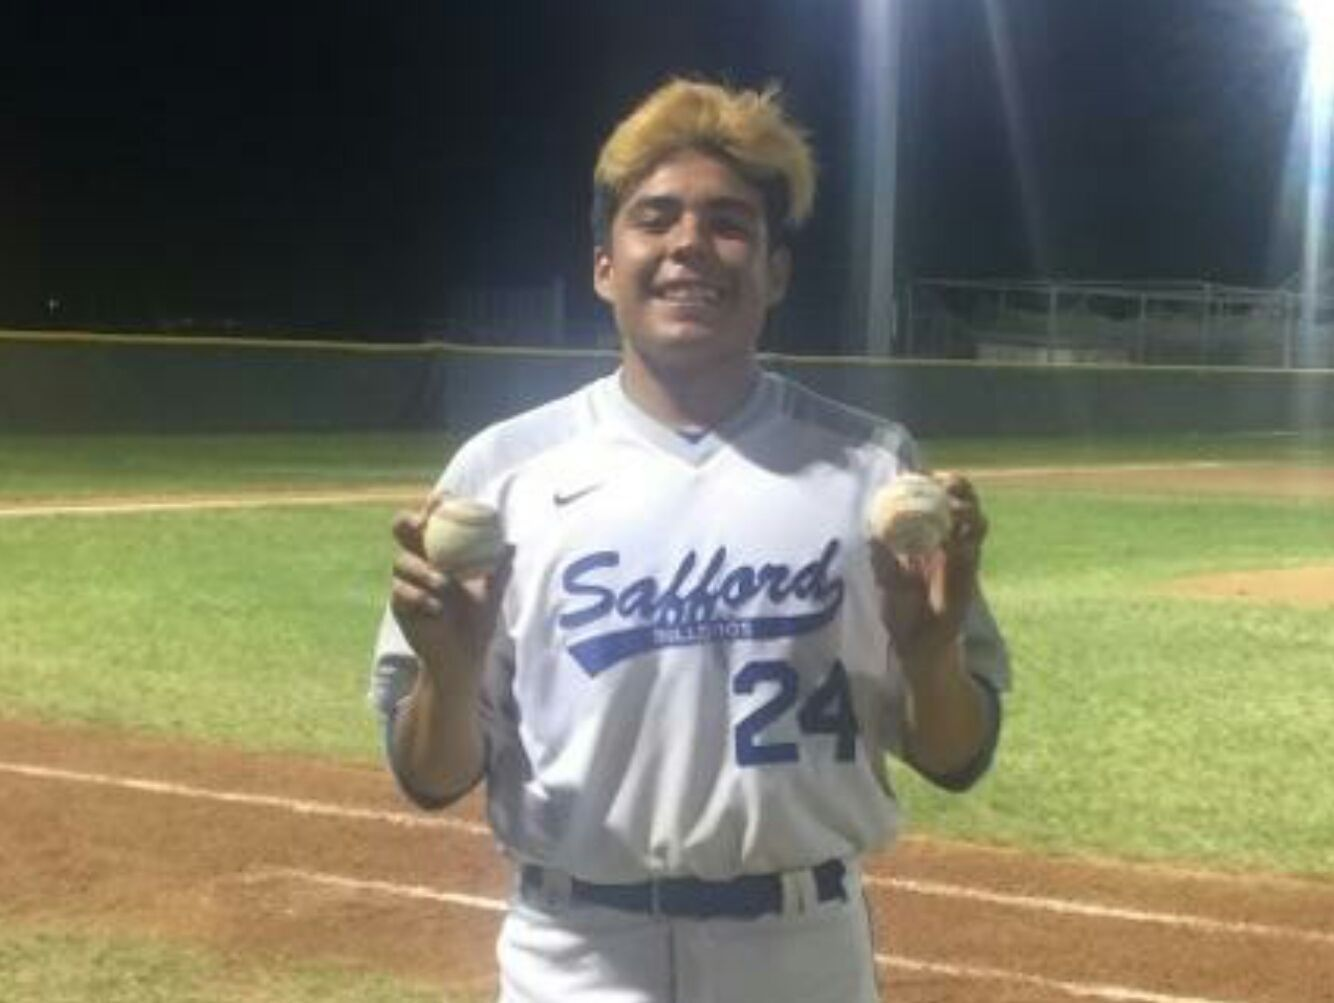 Safford pitcher Gabe Ornelas holds up two baseballs, representing his back-to--back no-hitters.